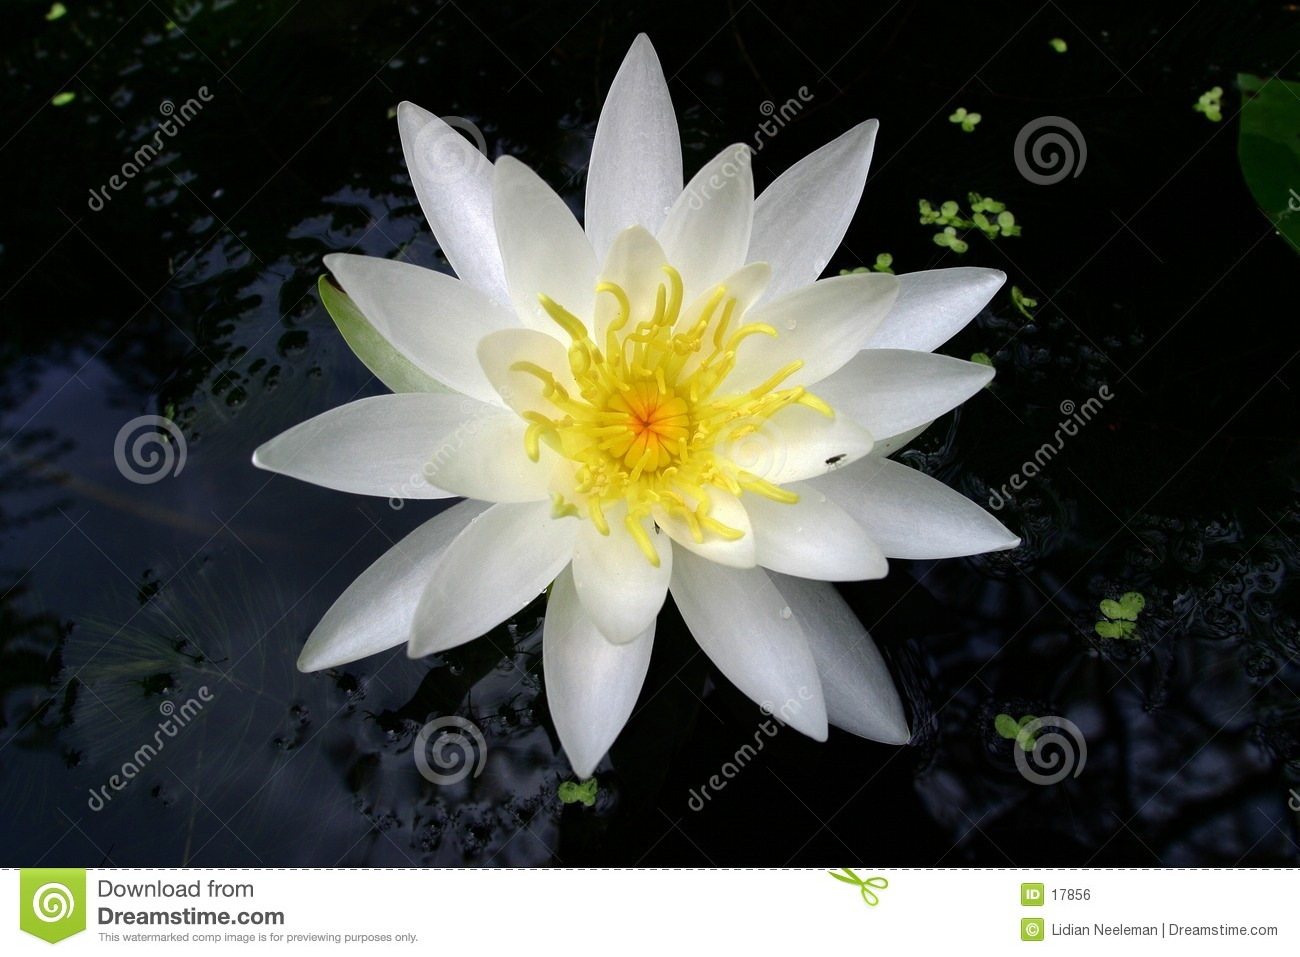 L eau lilly